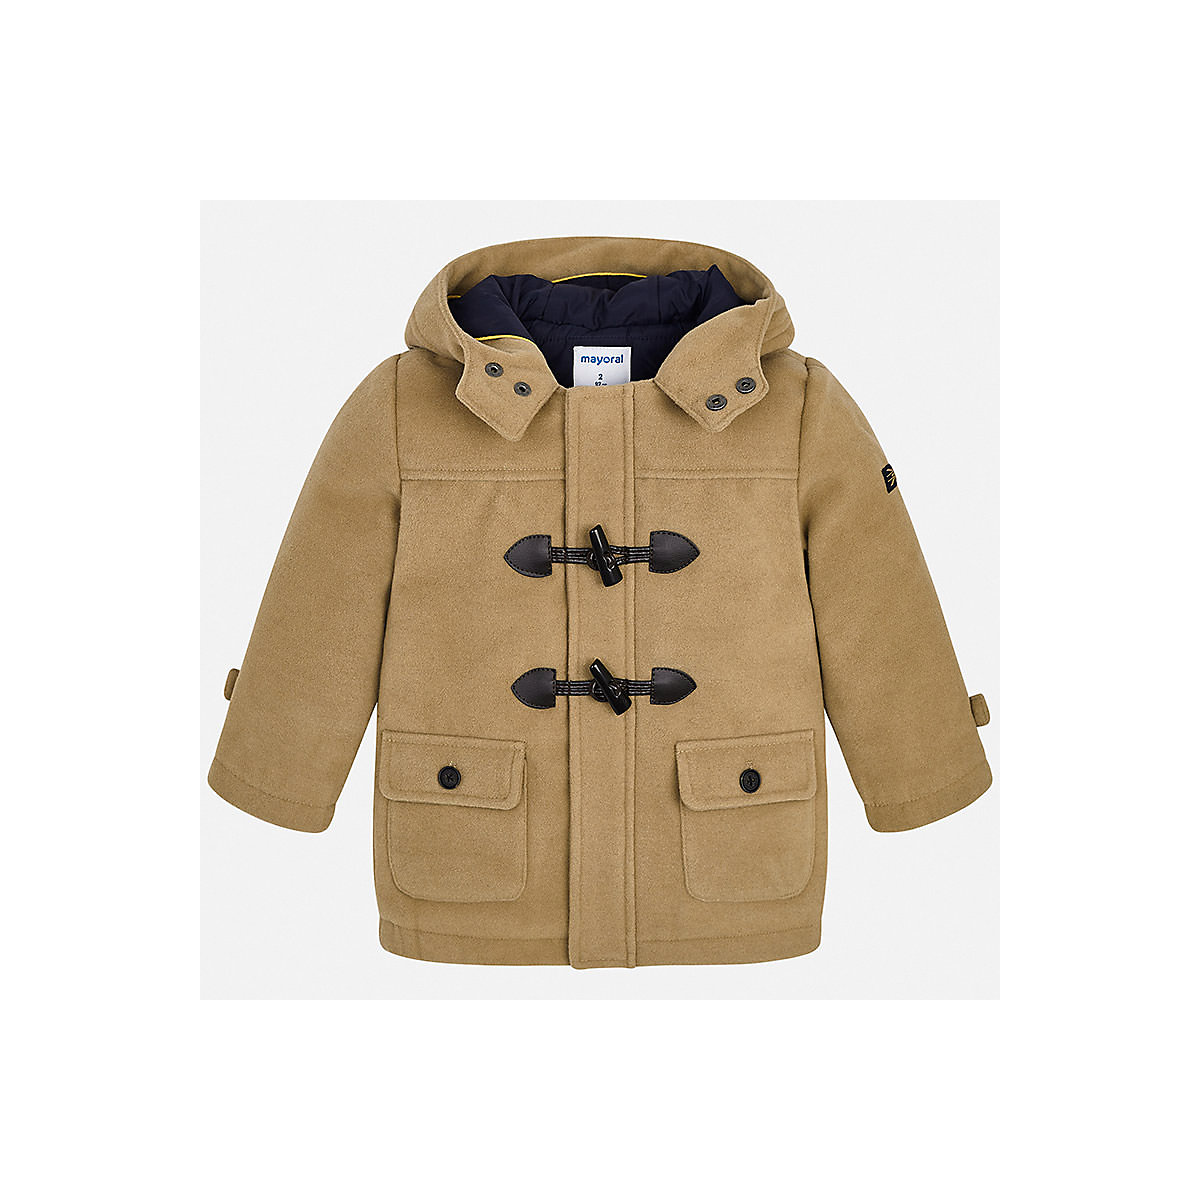 MAYORAL Jackets & Coats 8849849 jacket for girl boy coat baby clothes children clothing outwear boys girls